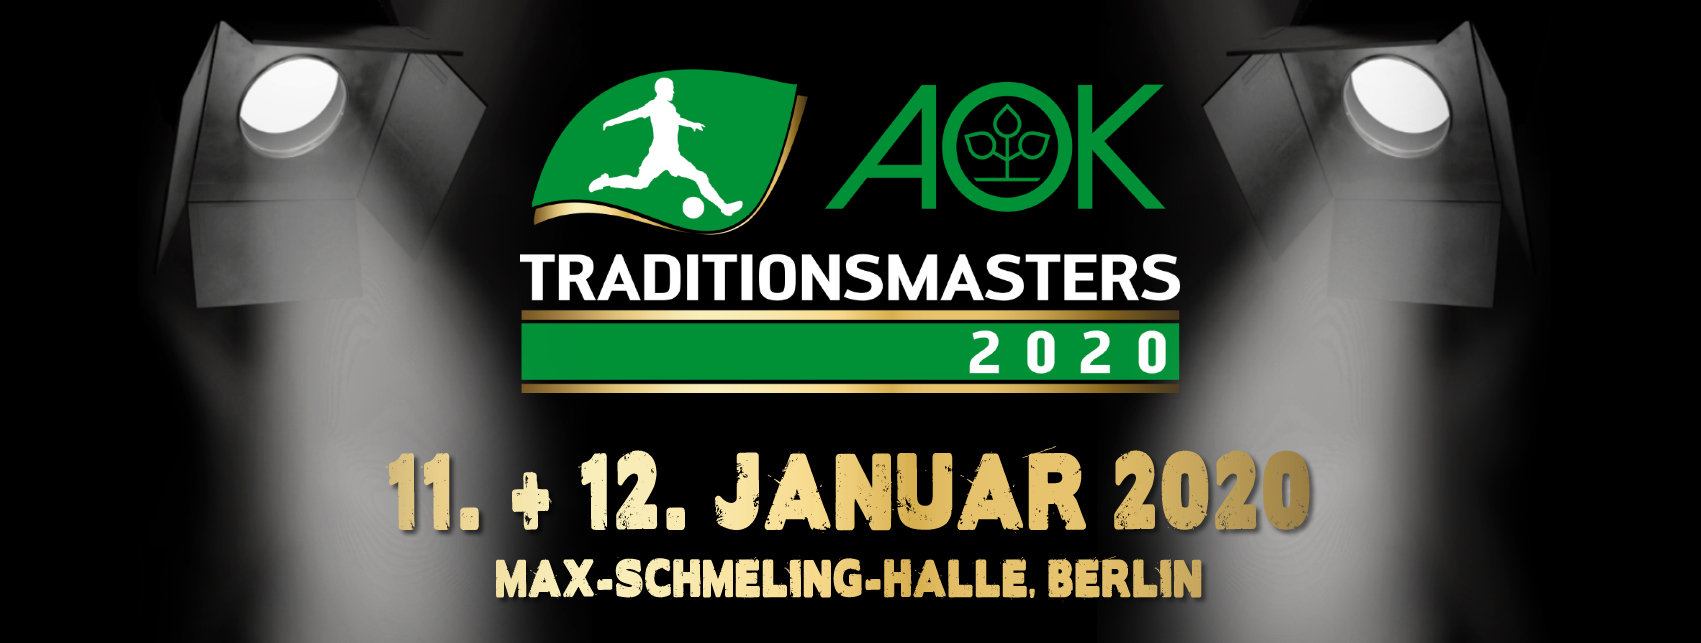 Aok Traditionsmasters